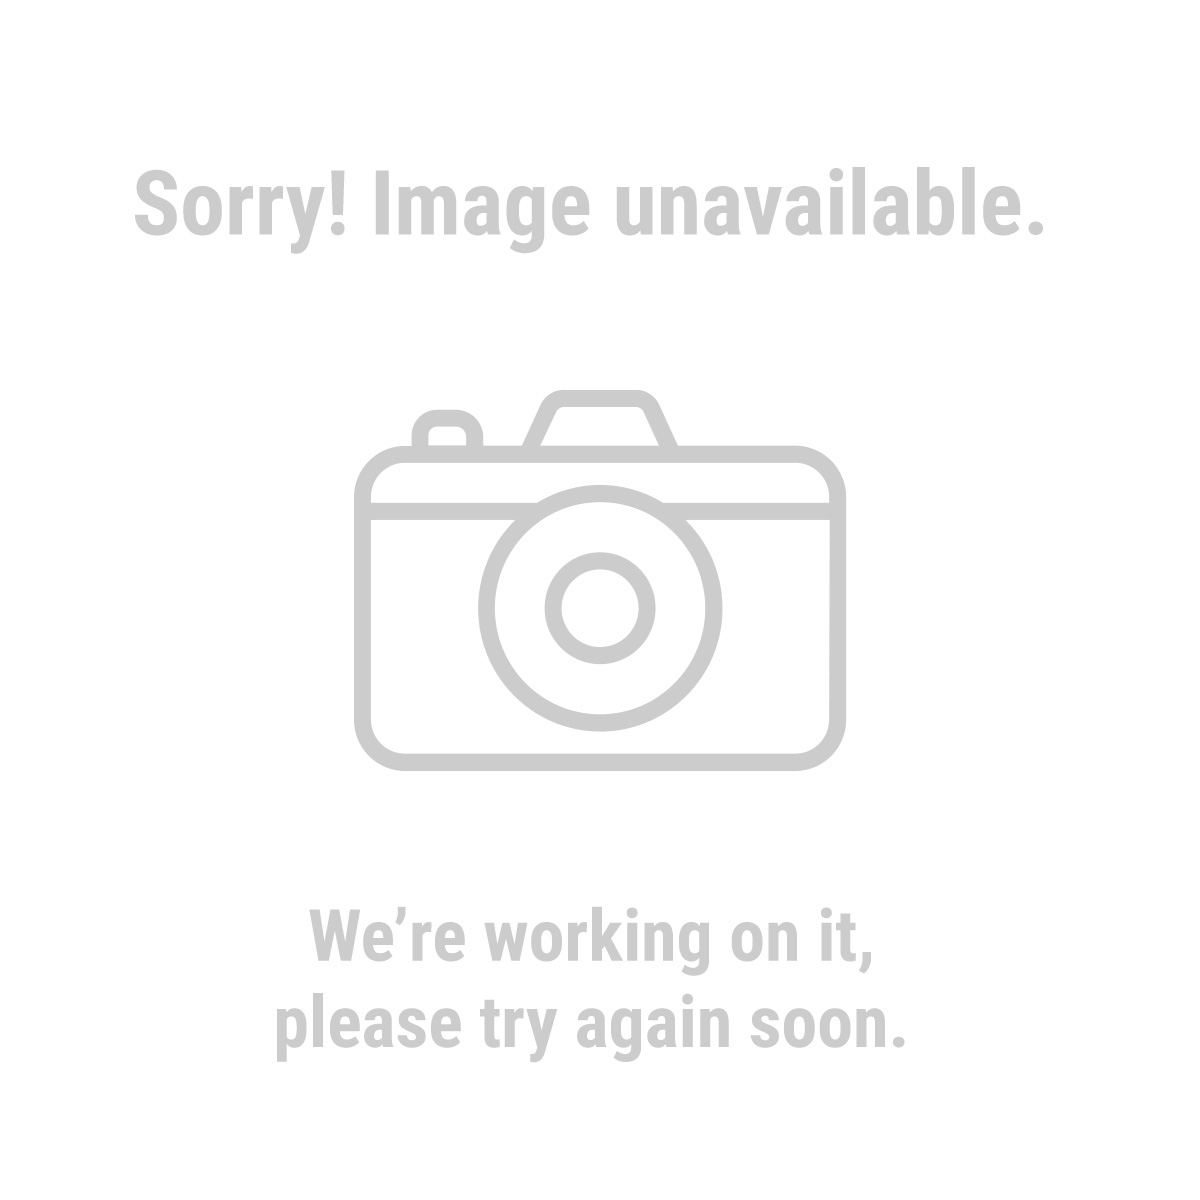 Bunker Hill Security 61805 Imitation Security Camera